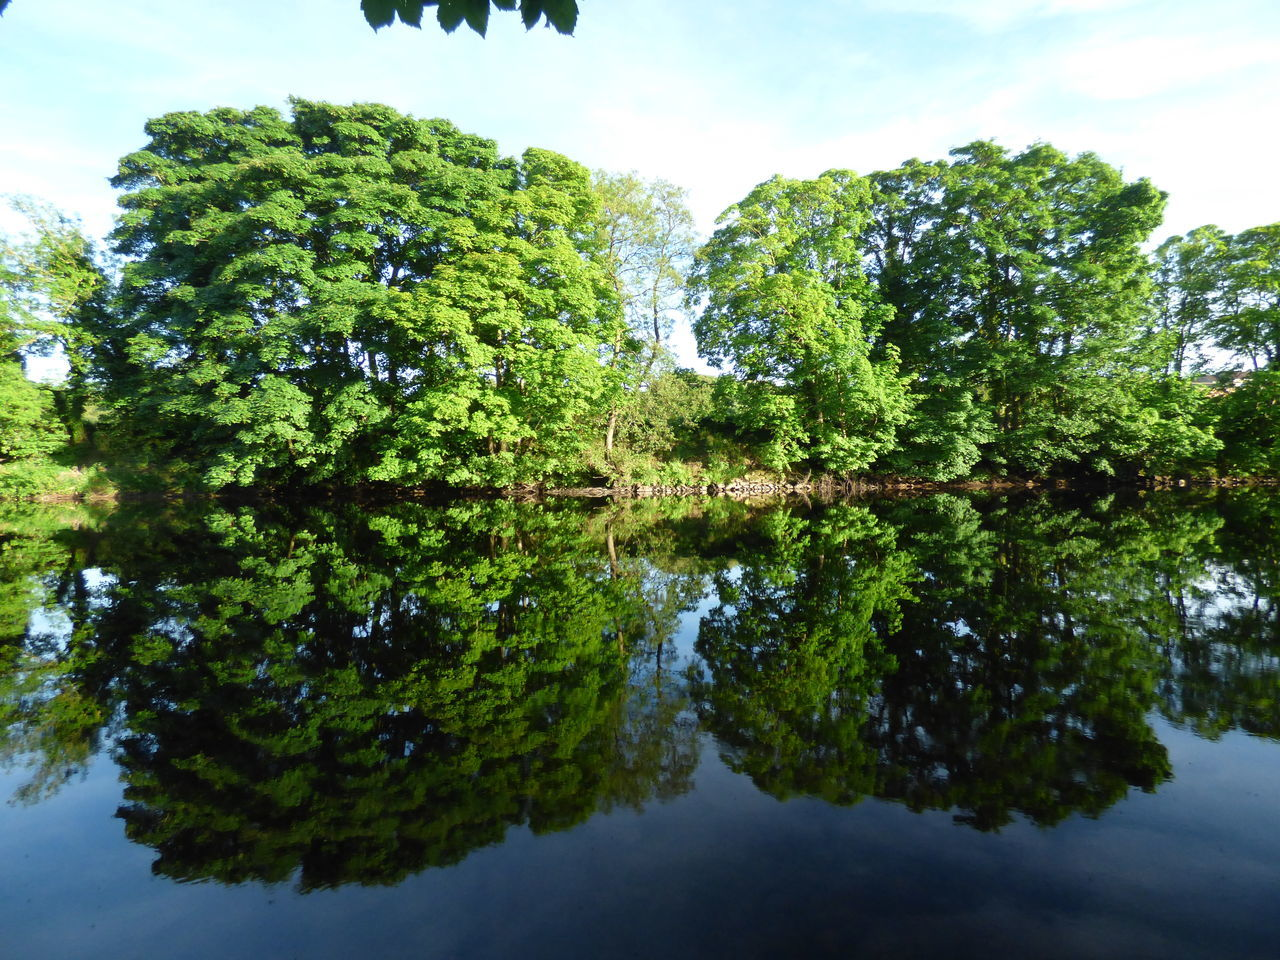 River reflection Tree Reflection Water Nature Outdoors Growth No People Sky Lake Day Beauty In Nature Tranquility Popular Photography Low Angle View Scenics Popular Photos Beauty In Nature Nature Tree Reflection